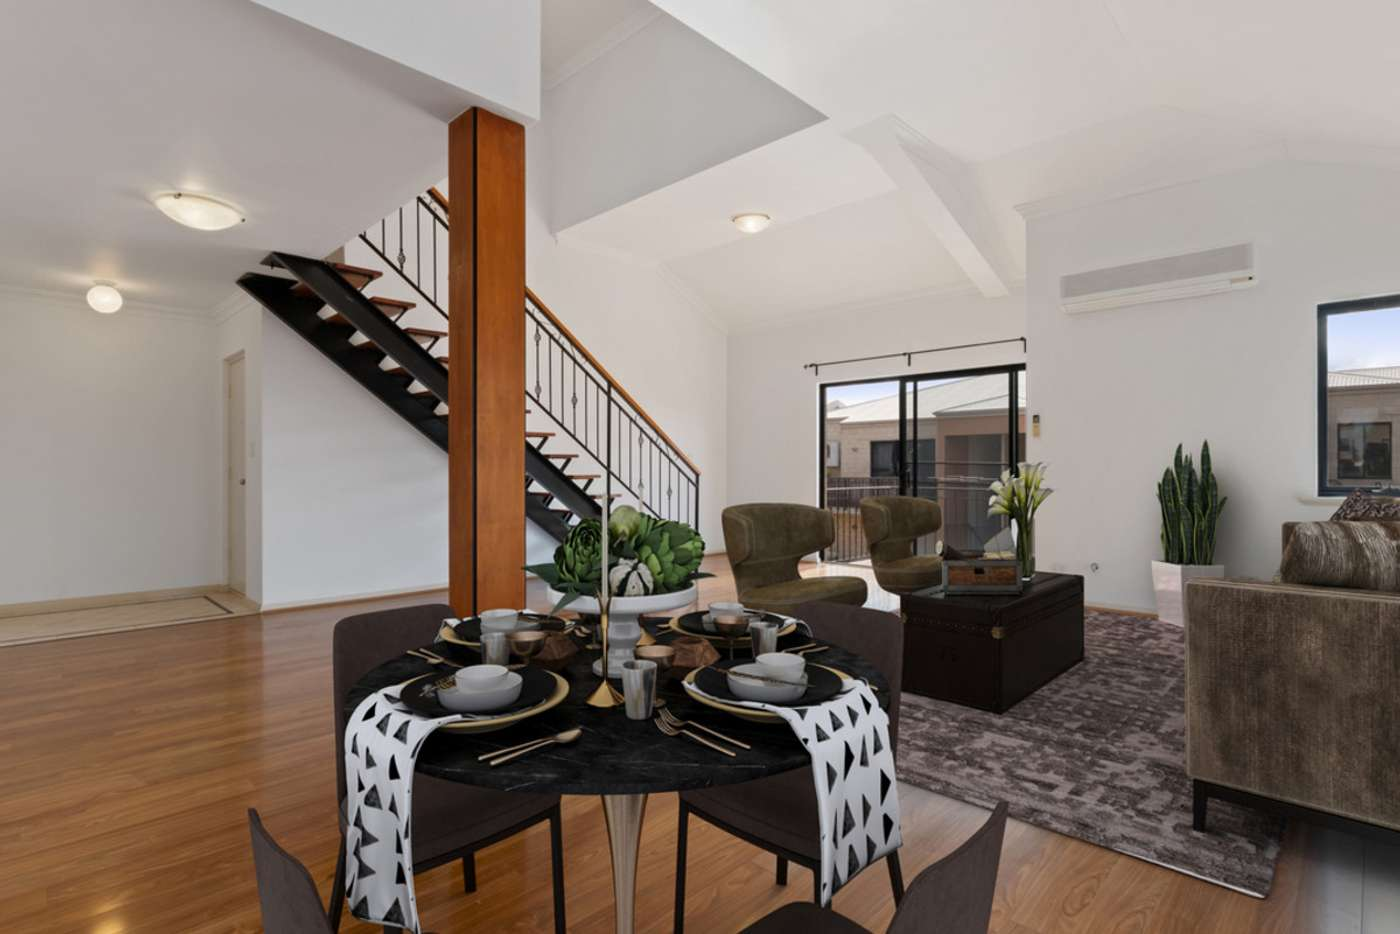 Main view of Homely apartment listing, 6/28 Bronte Street, East Perth WA 6004